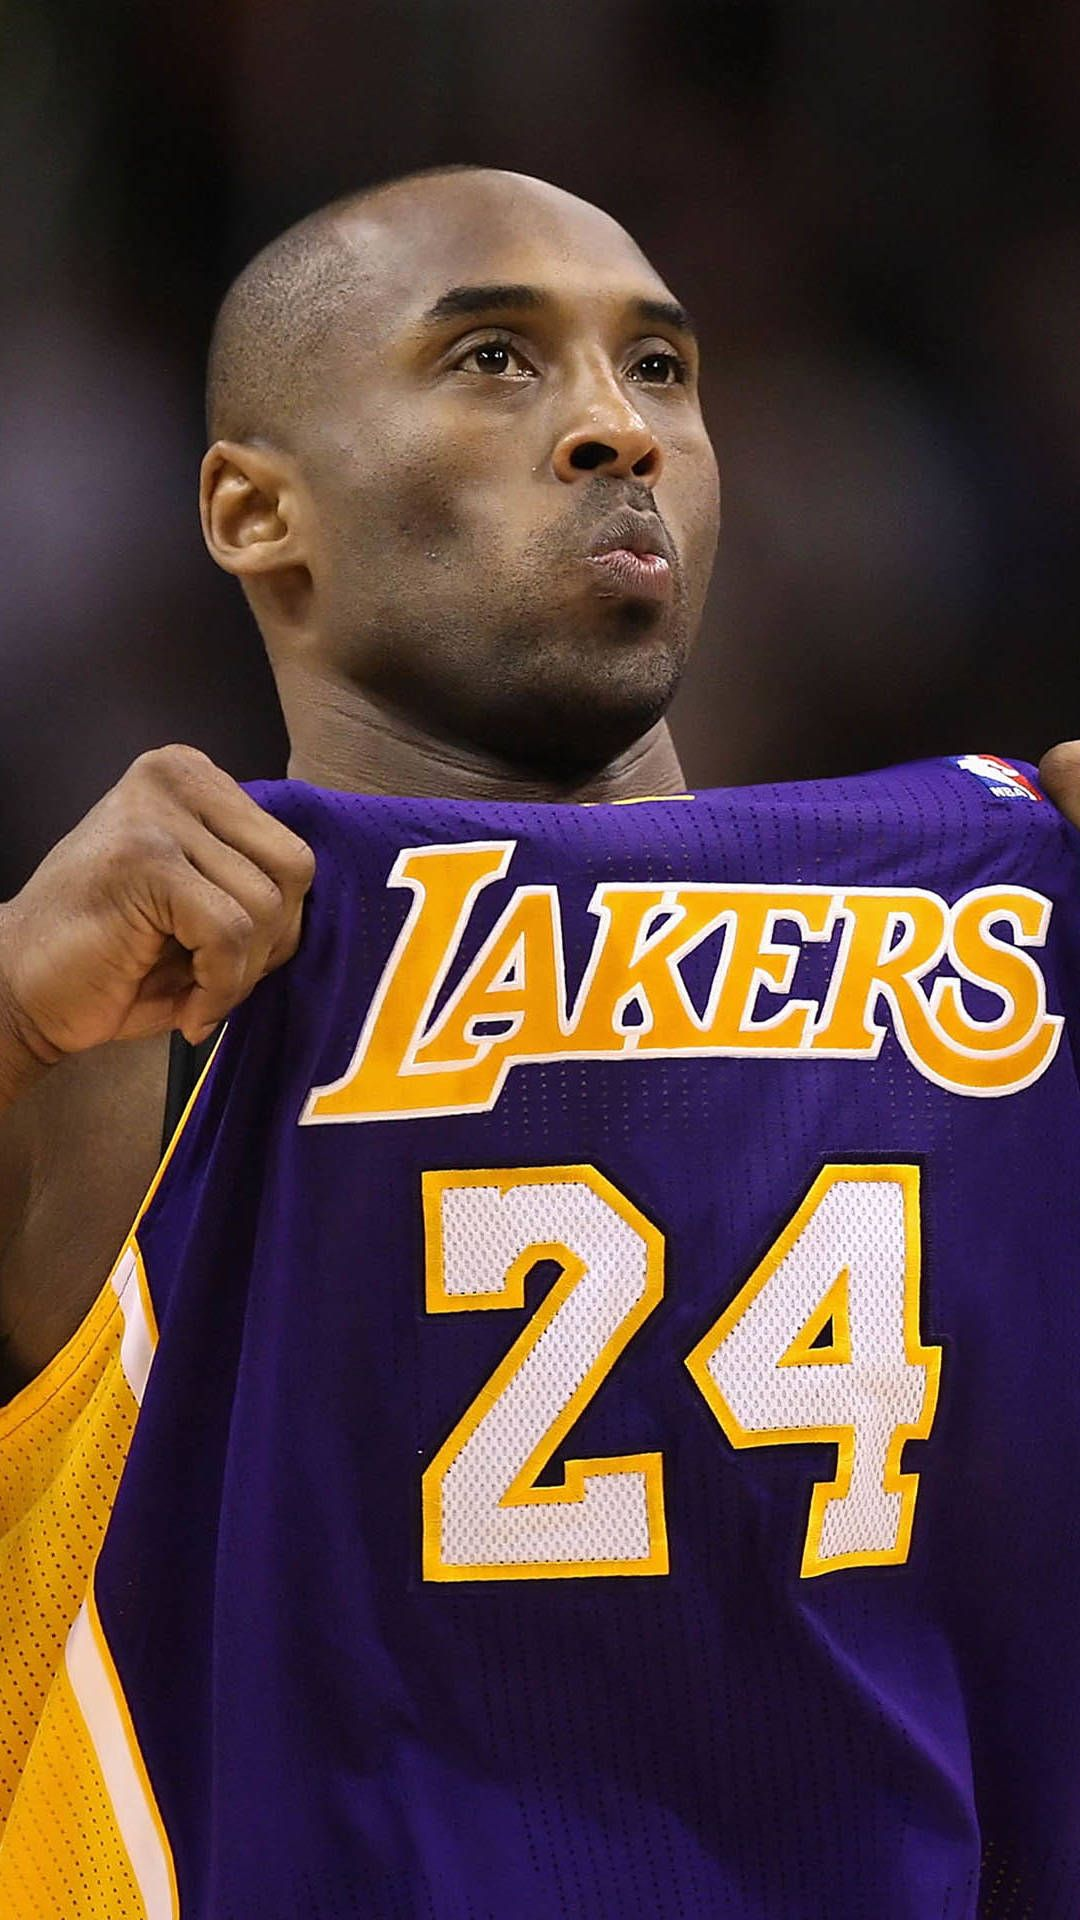 1080x1920 30+ Kobe Bryant Wallpapers HD for iPhone 2016 - Apple Lives